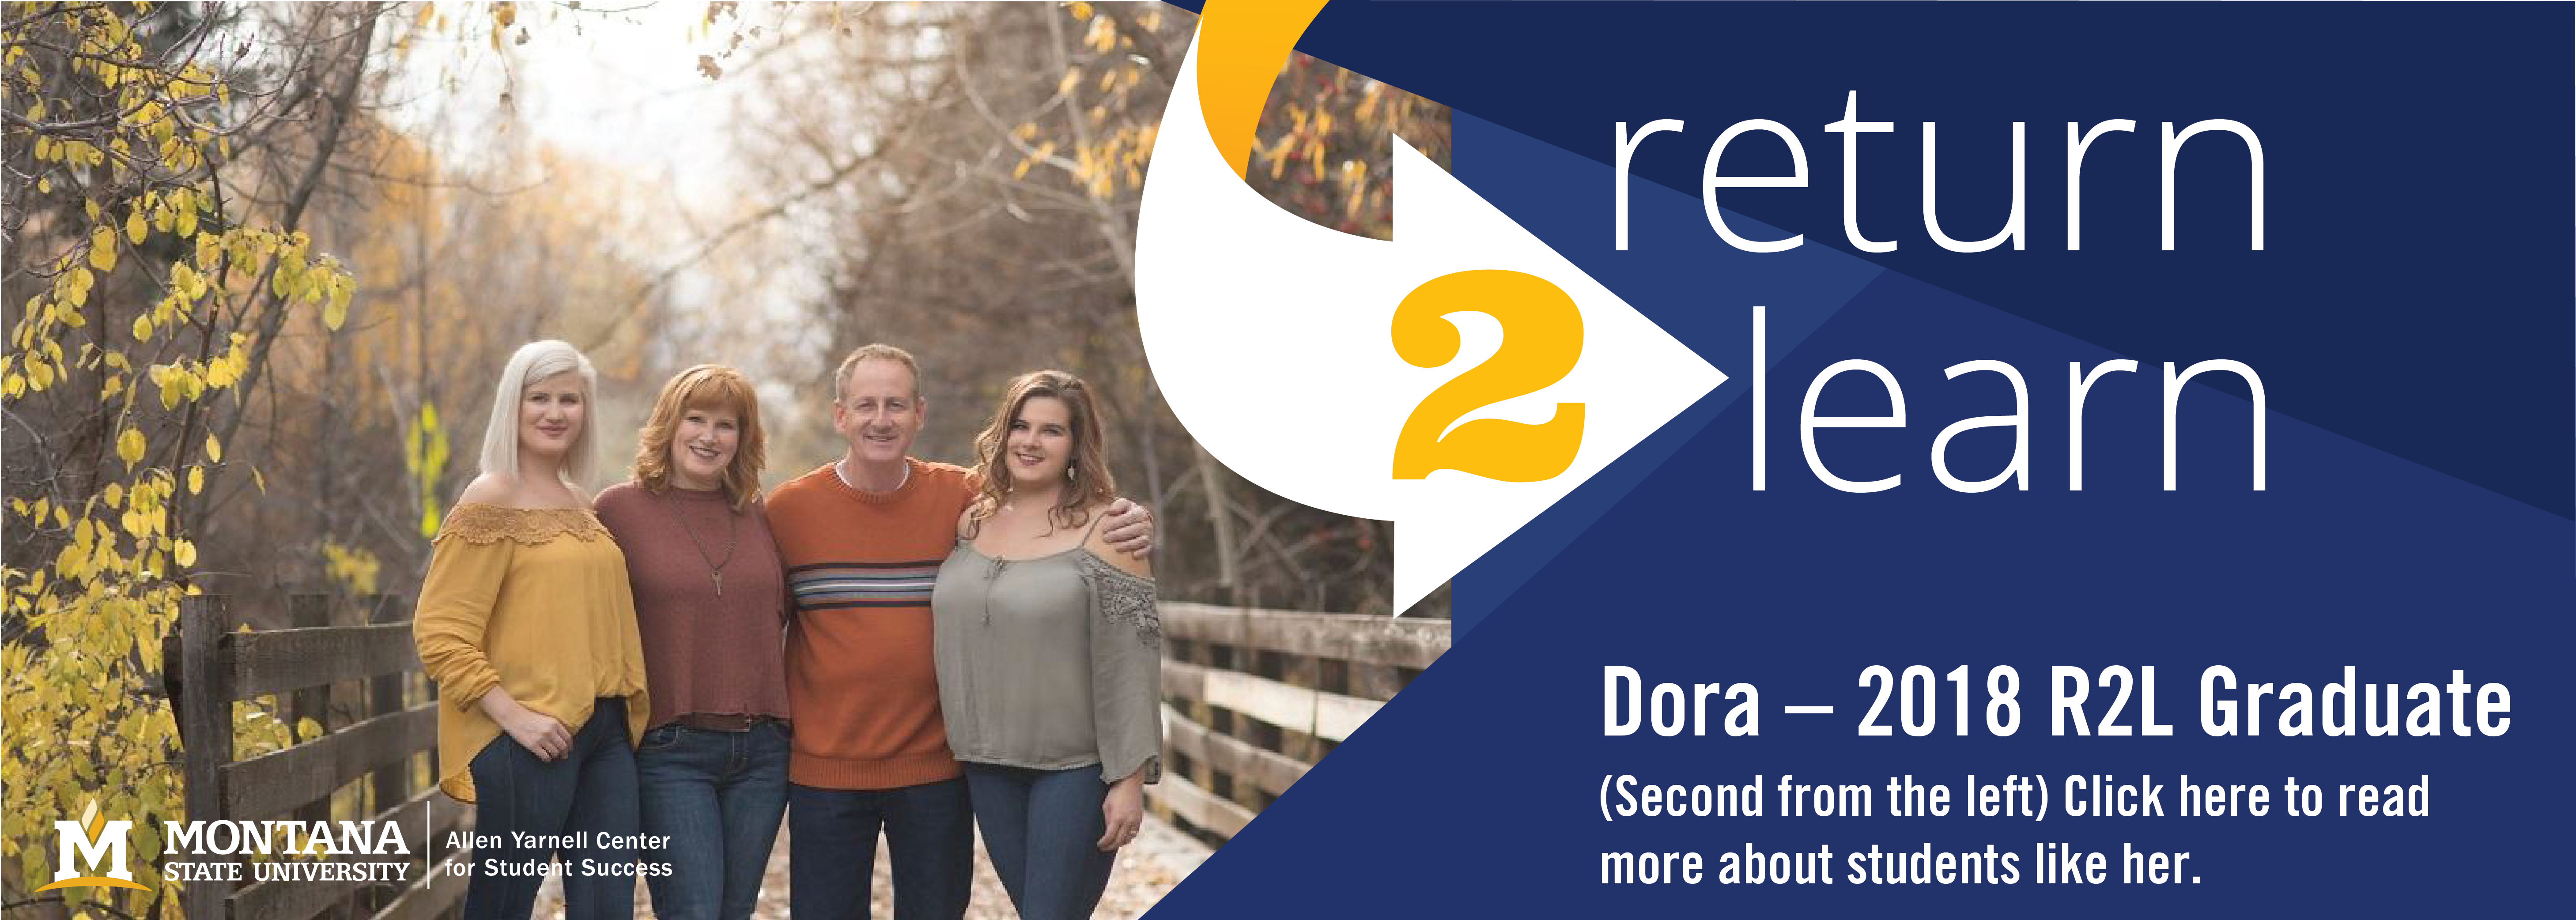 Dora - 2018 R2L graduate.  click here to read story about her